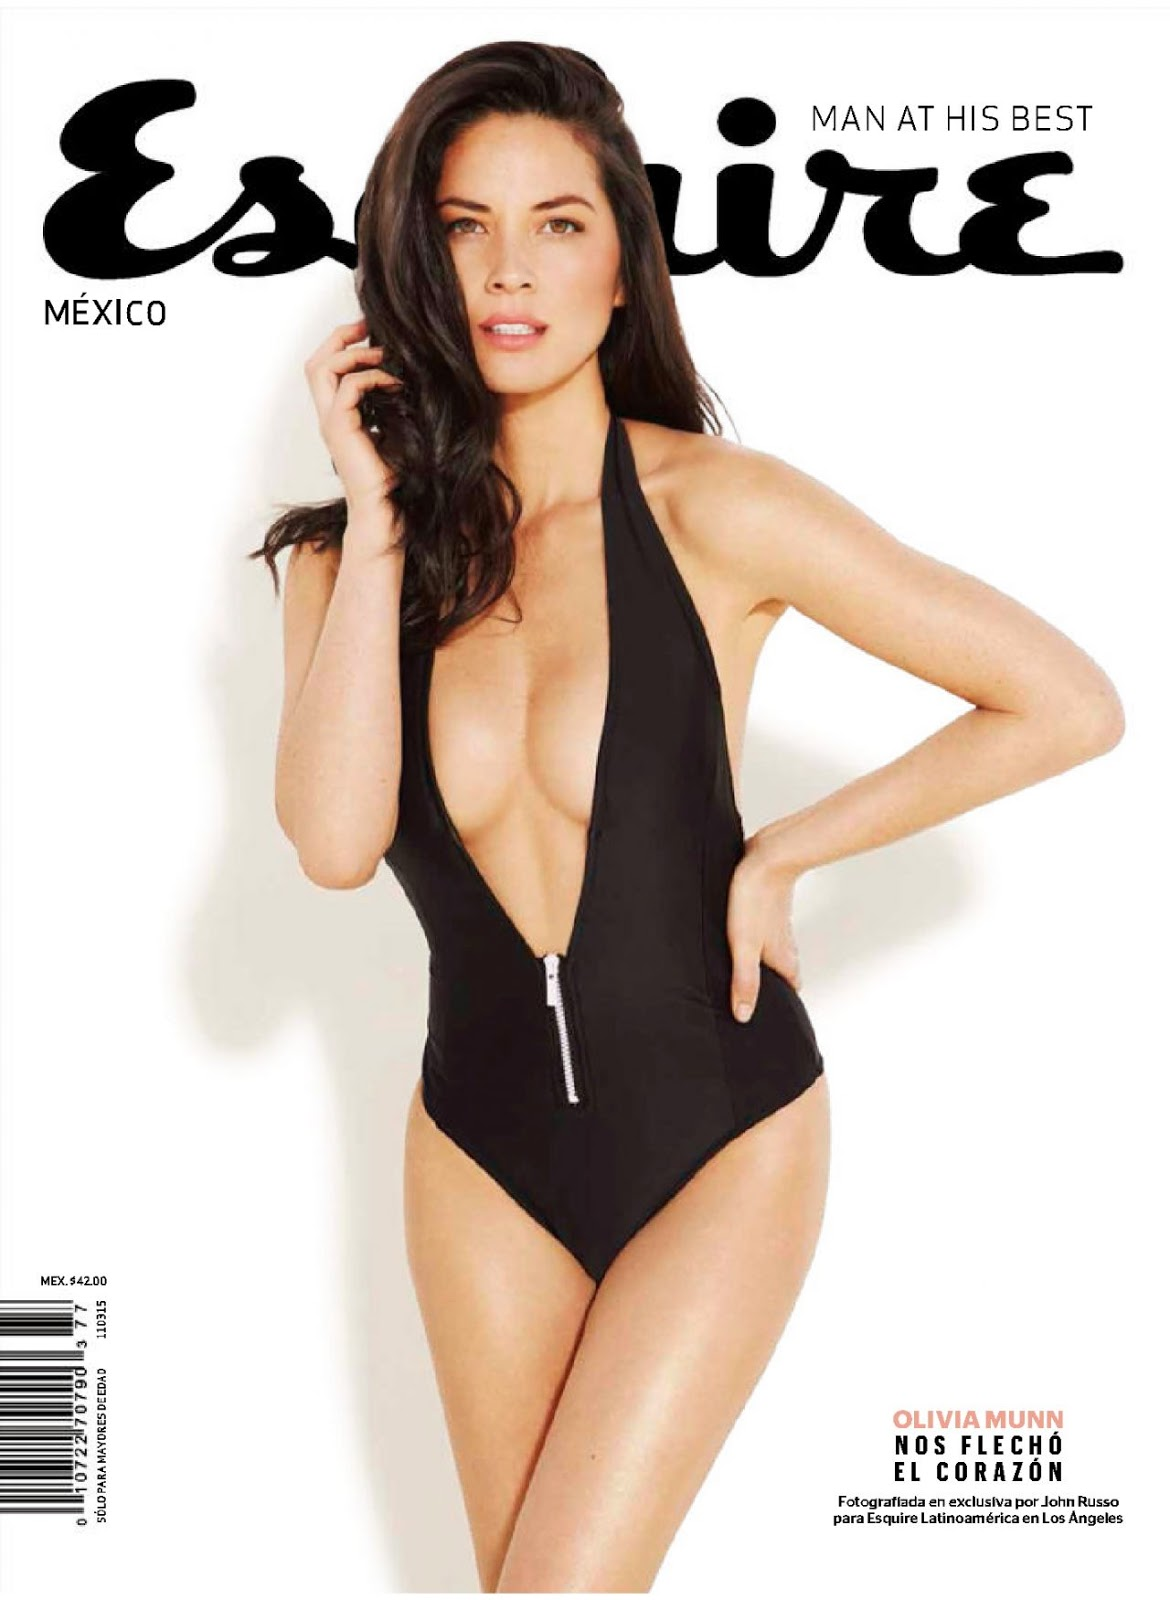 Actress, Model: Olivia Munn - Esquire Mexico February 2015 Issue